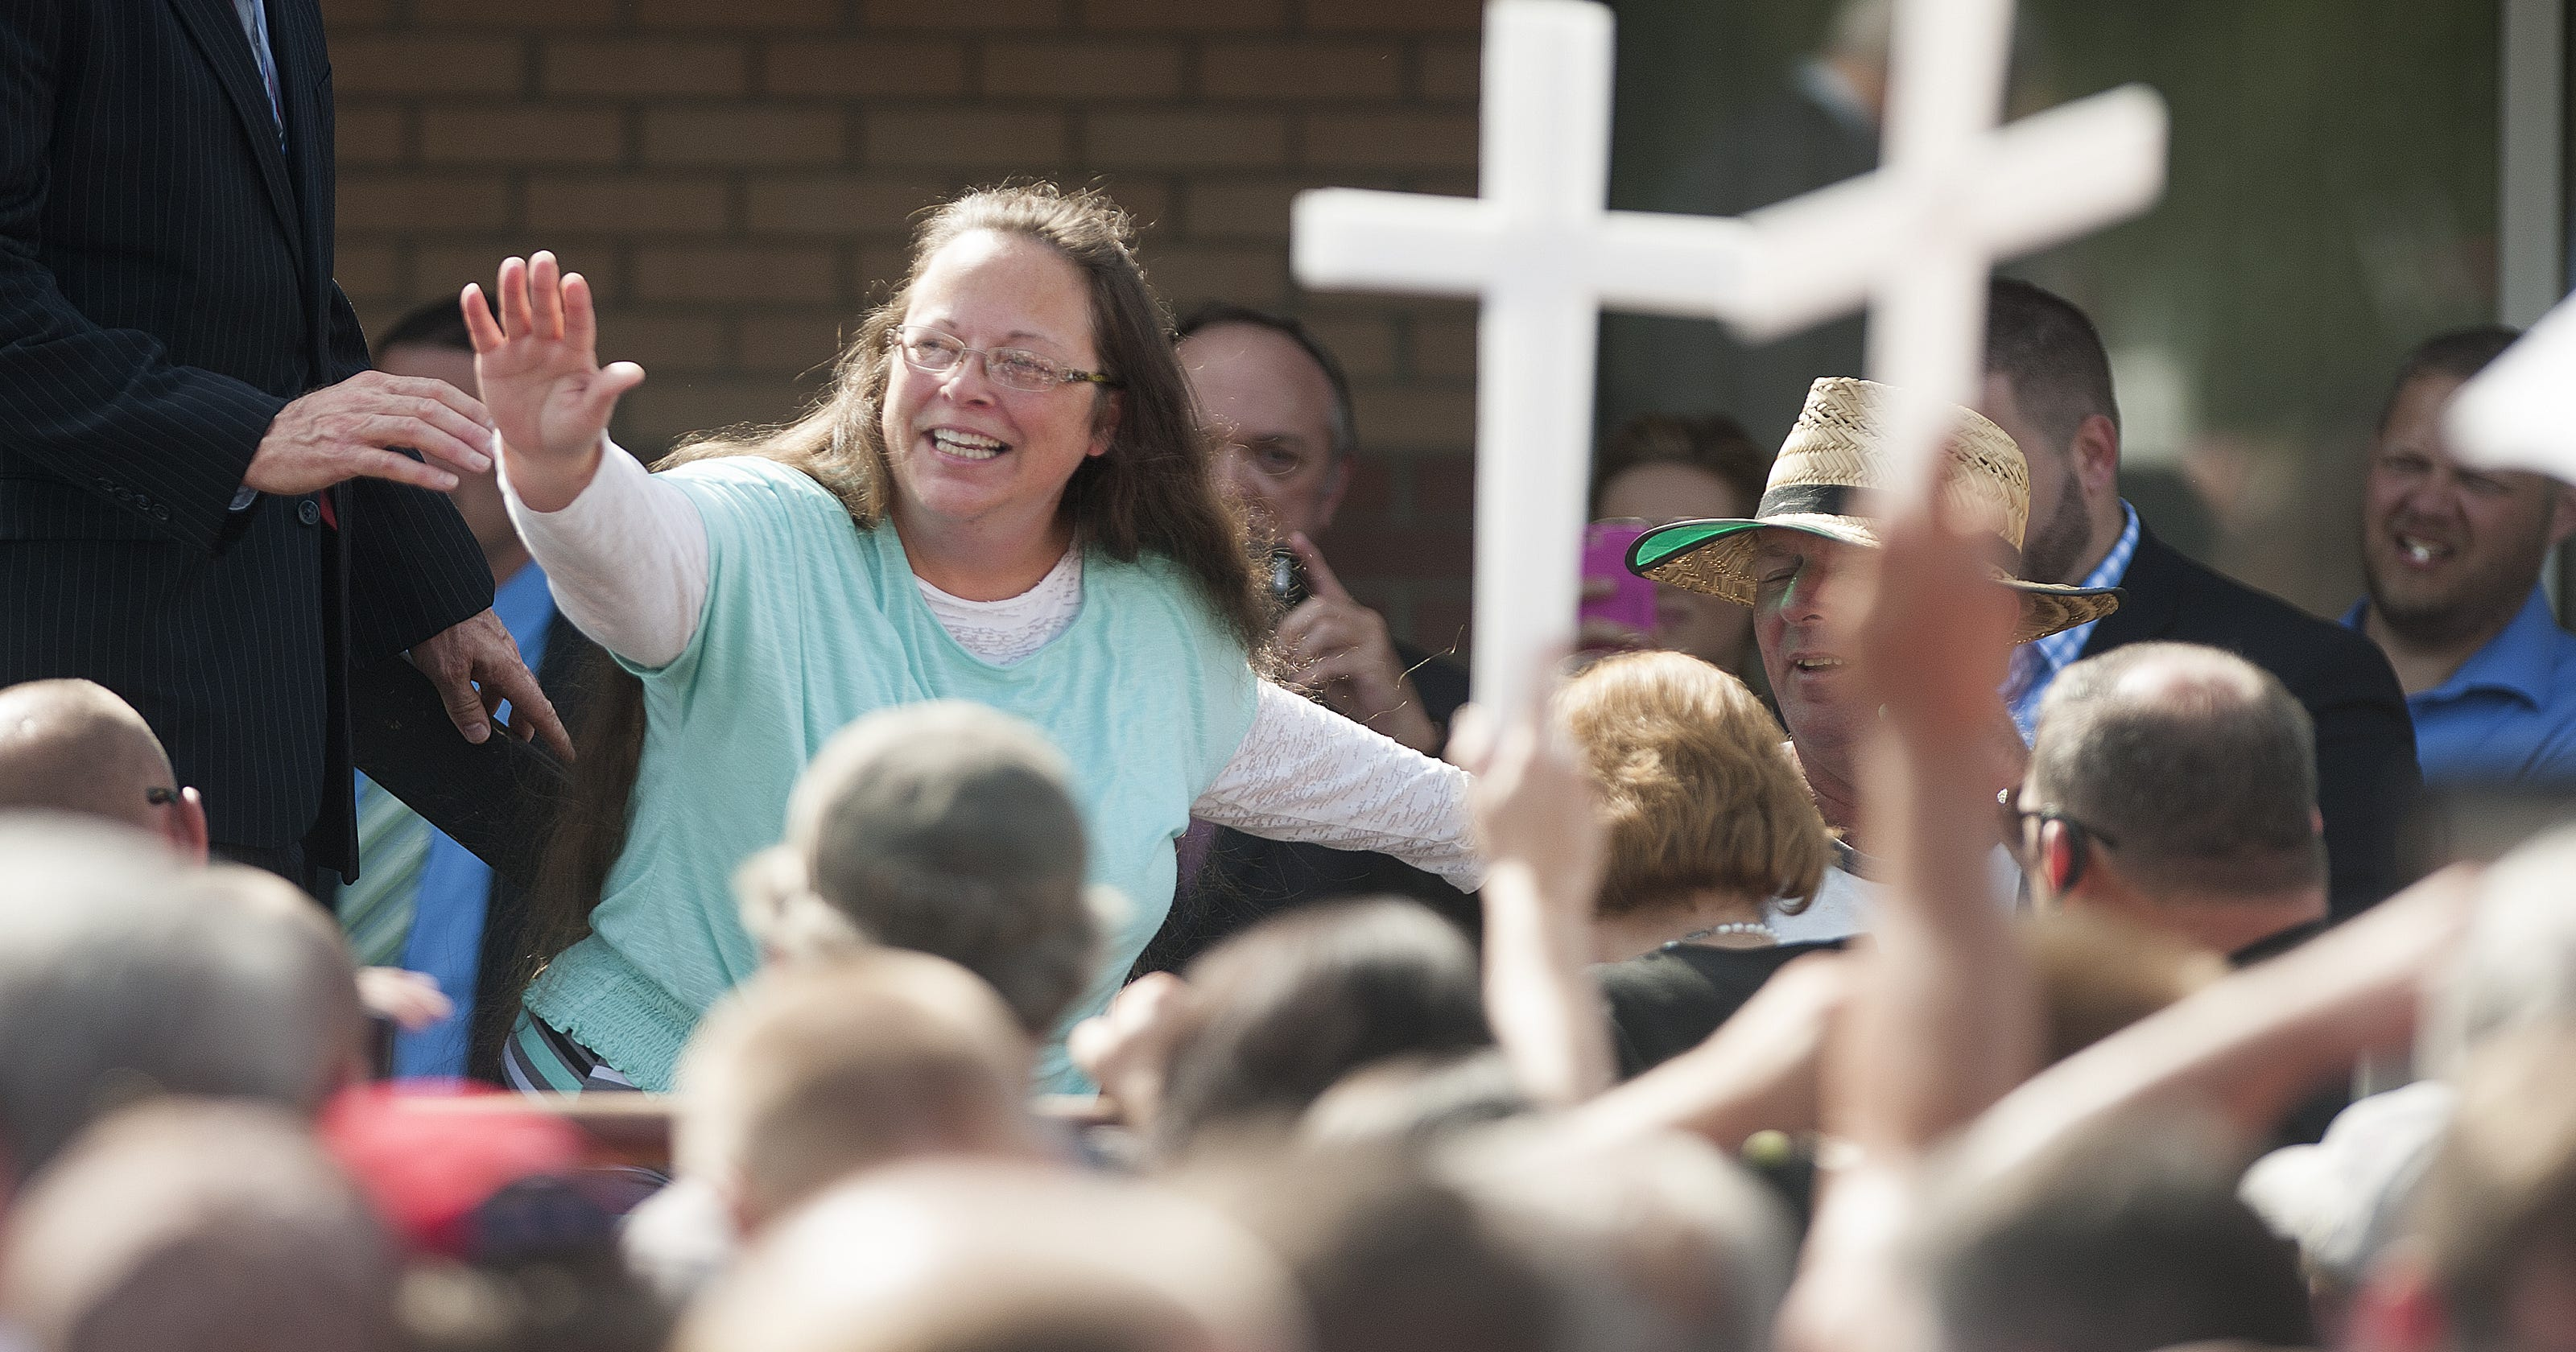 What's an Apostolic Christian and why is Kim Davis' hair so